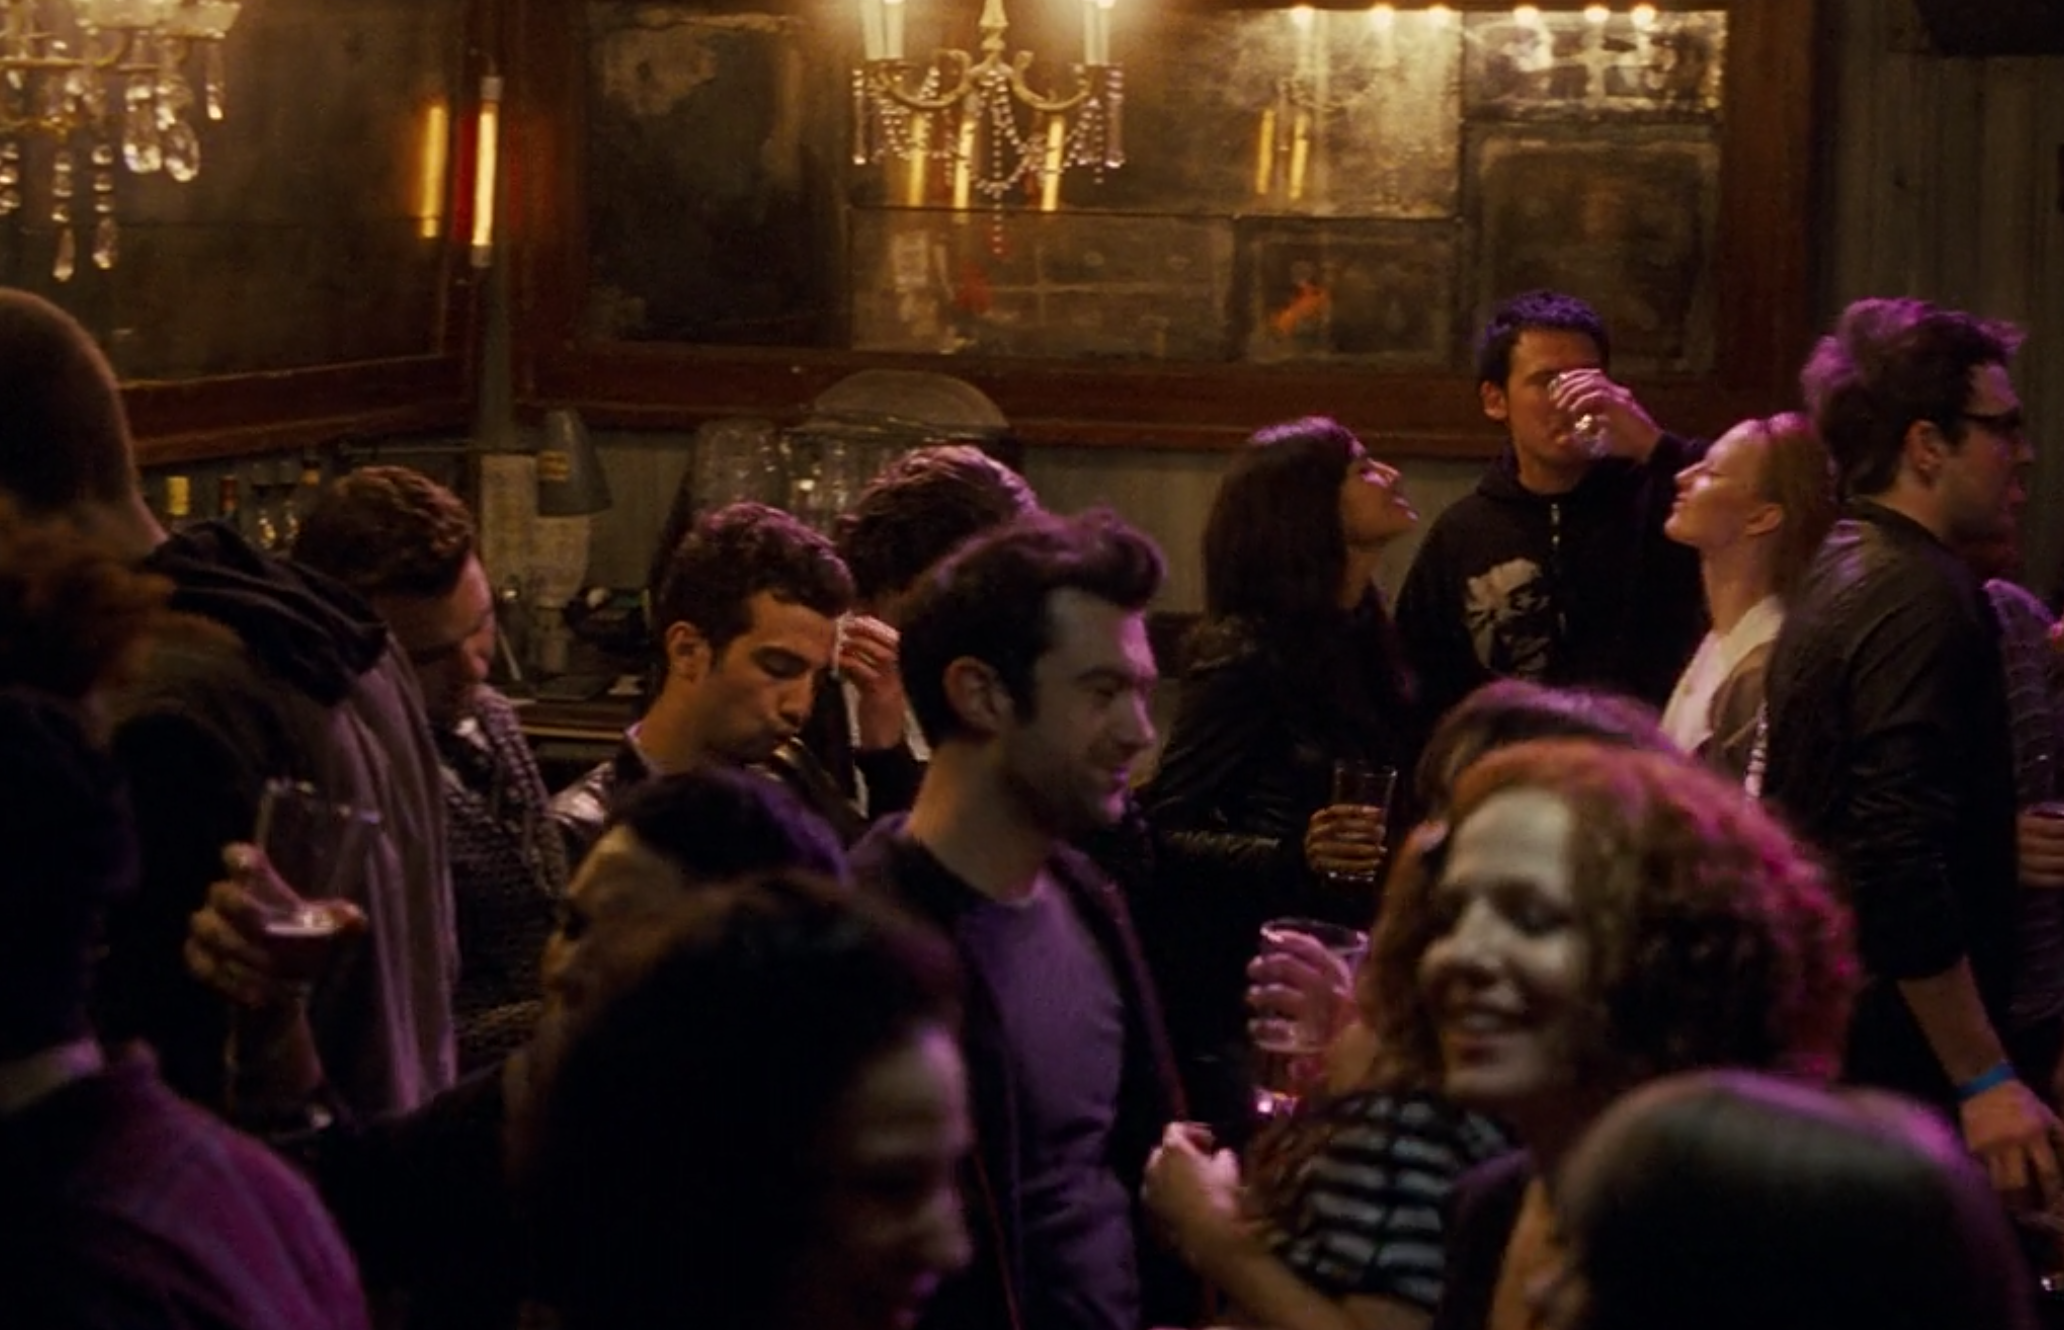 Union Pool in Nick & Norah's Infinite Playlist